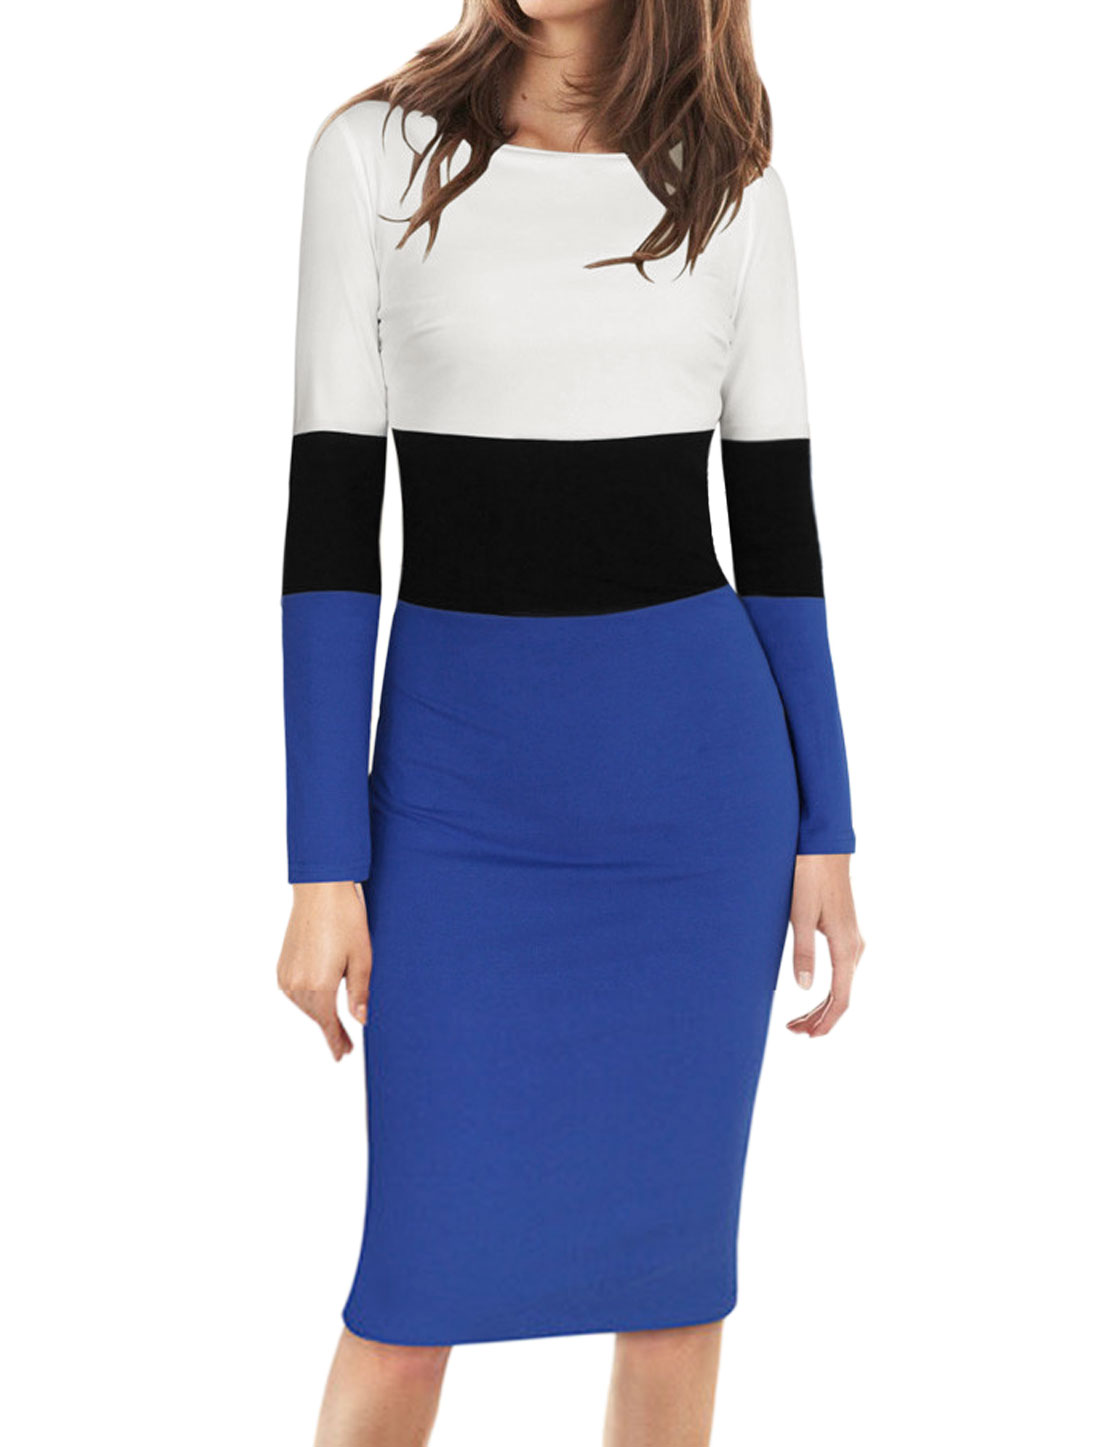 Women Boat Neck Long Sleeves Color Block Bodycon Pencil Dress Blue White L